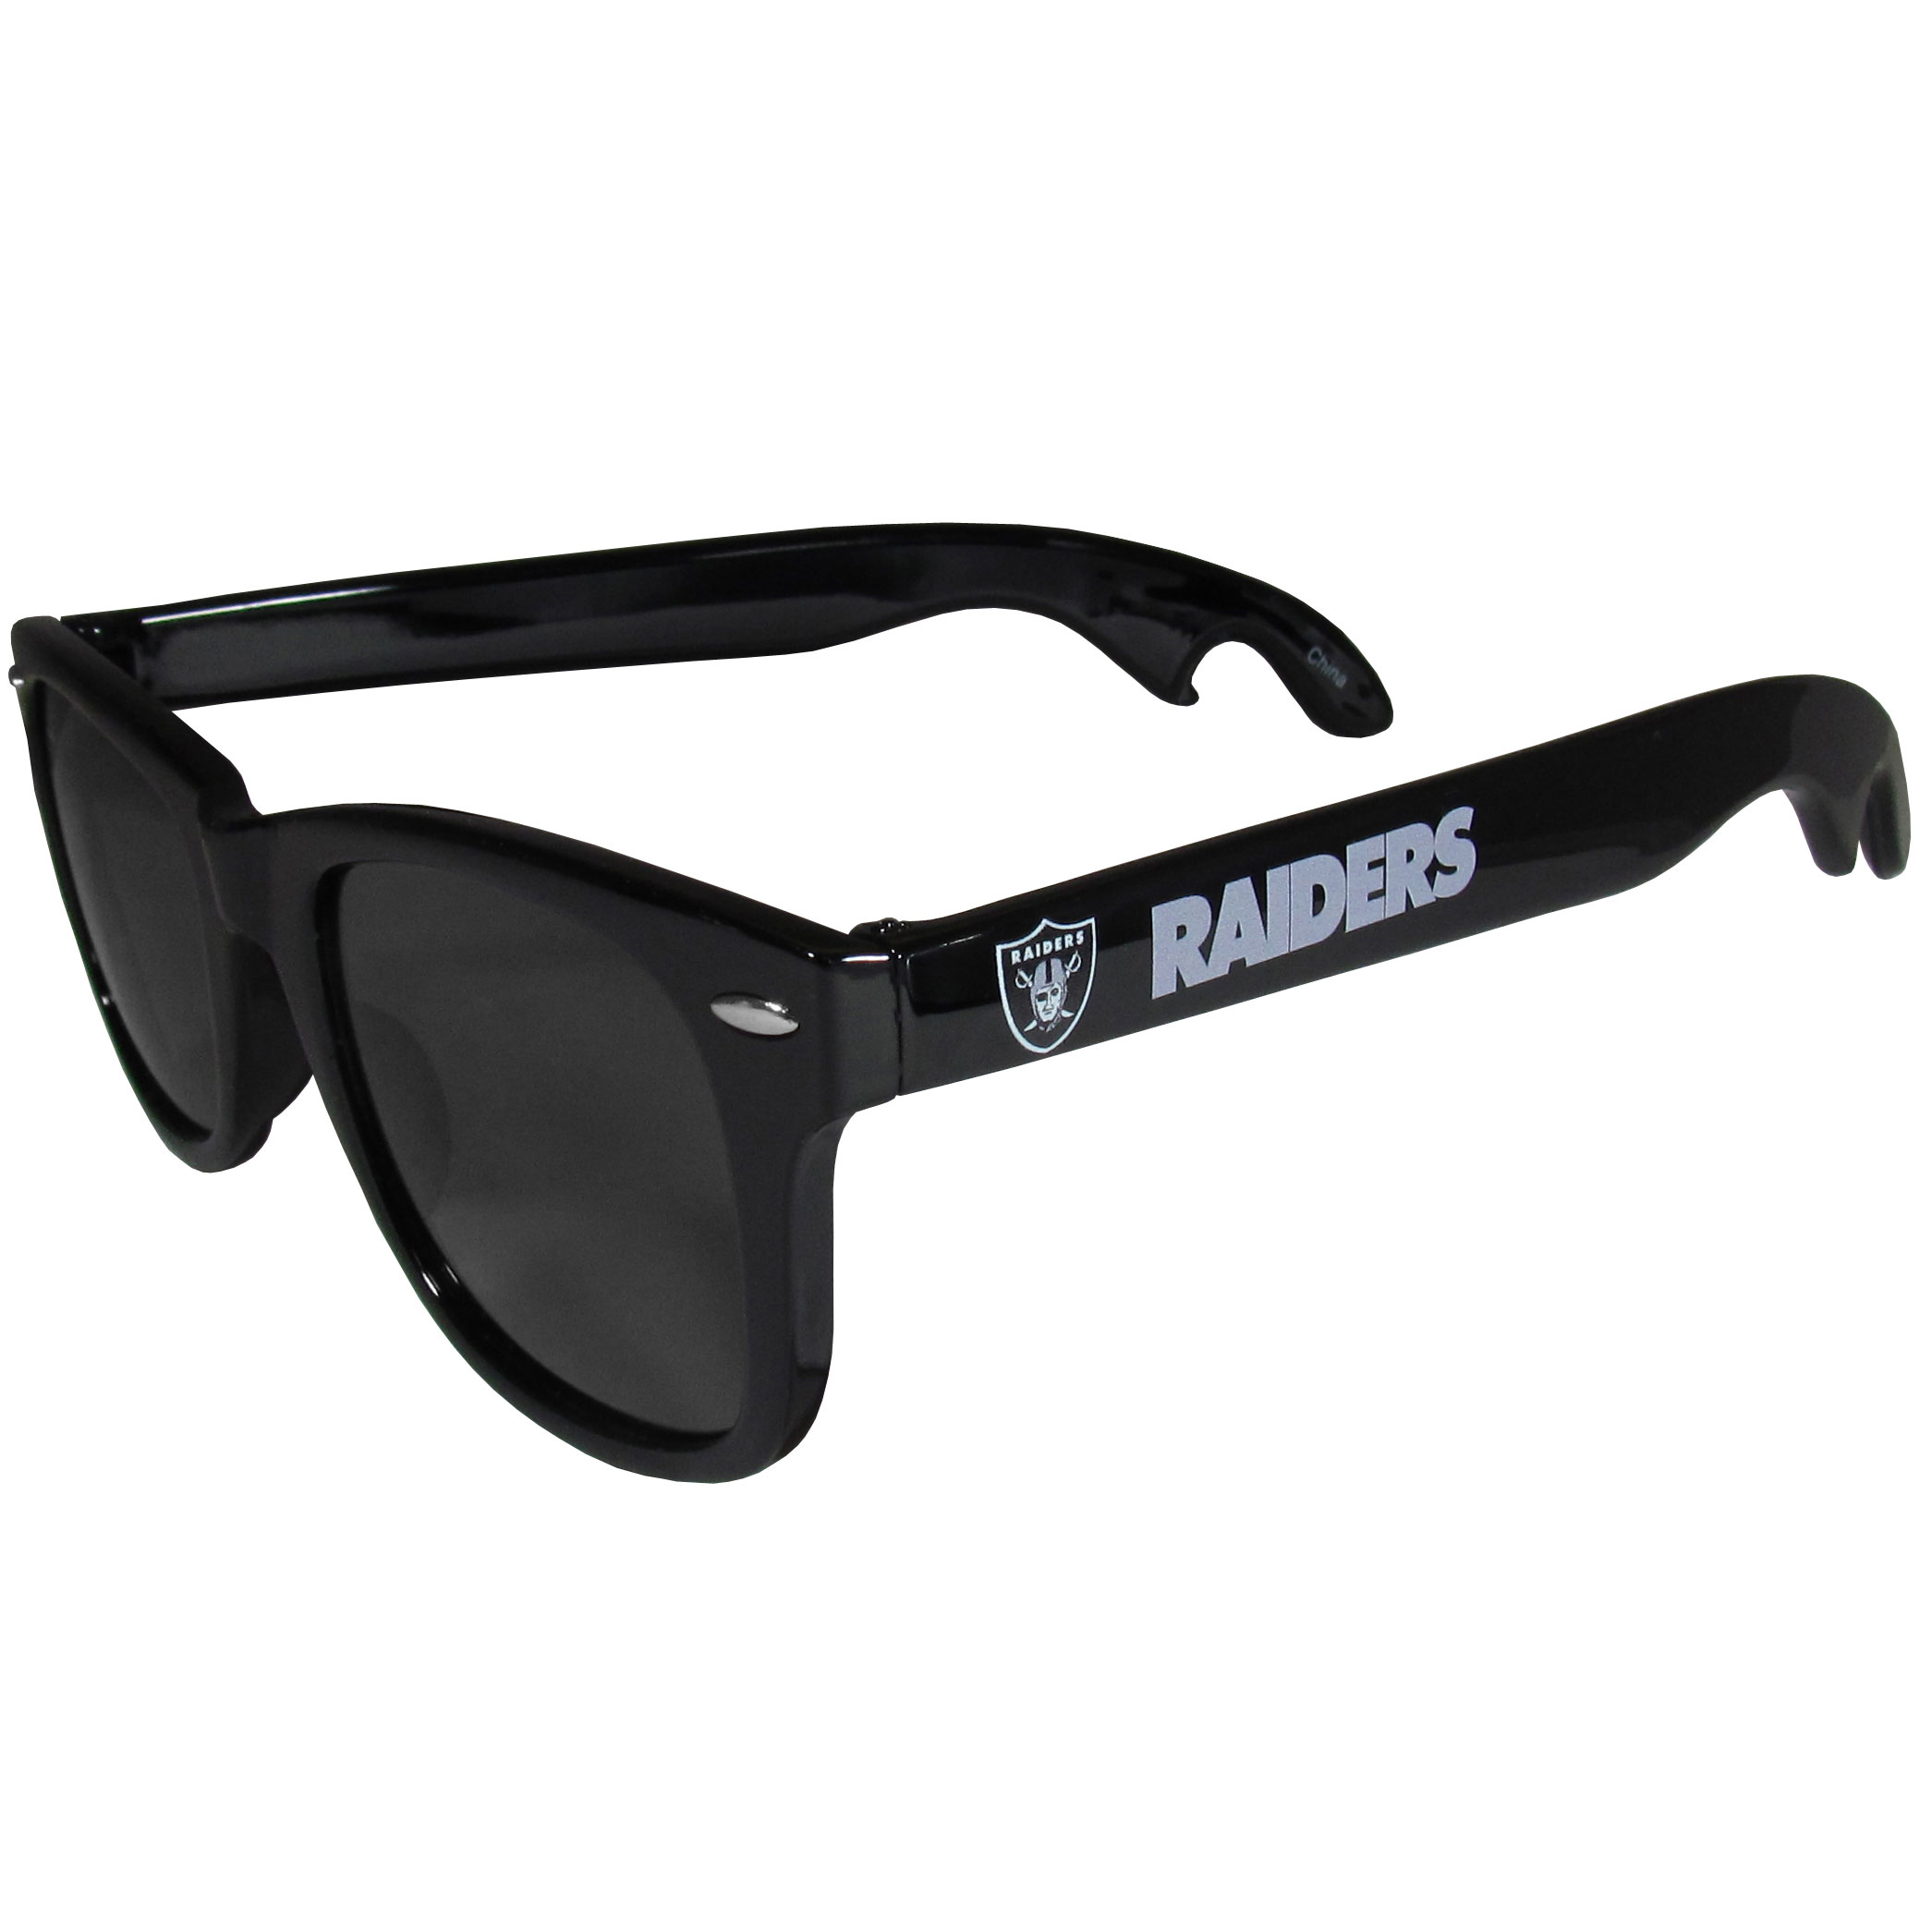 Oakland Raiders Beachfarer Bottle Opener Sunglasses - Seriously, these sunglasses open bottles! Keep the party going with these amazing Oakland Raiders bottle opener sunglasses. The stylish retro frames feature team designs on the arms and functional bottle openers on the end of the arms. Whether you are at the beach or having a backyard BBQ on game day, these shades will keep your eyes protected with 100% UVA/UVB protection and keep you hydrated with the handy bottle opener arms.